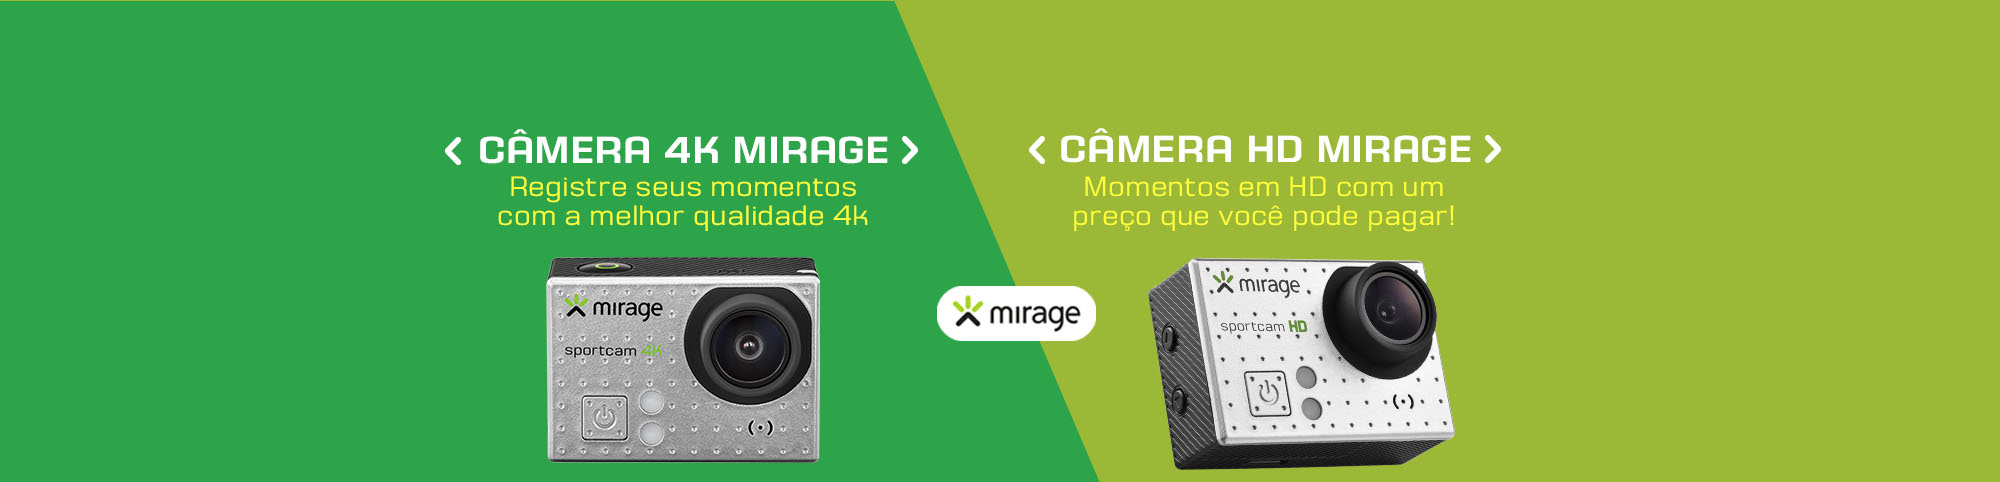 Câmeras_Mirage-HD_4K